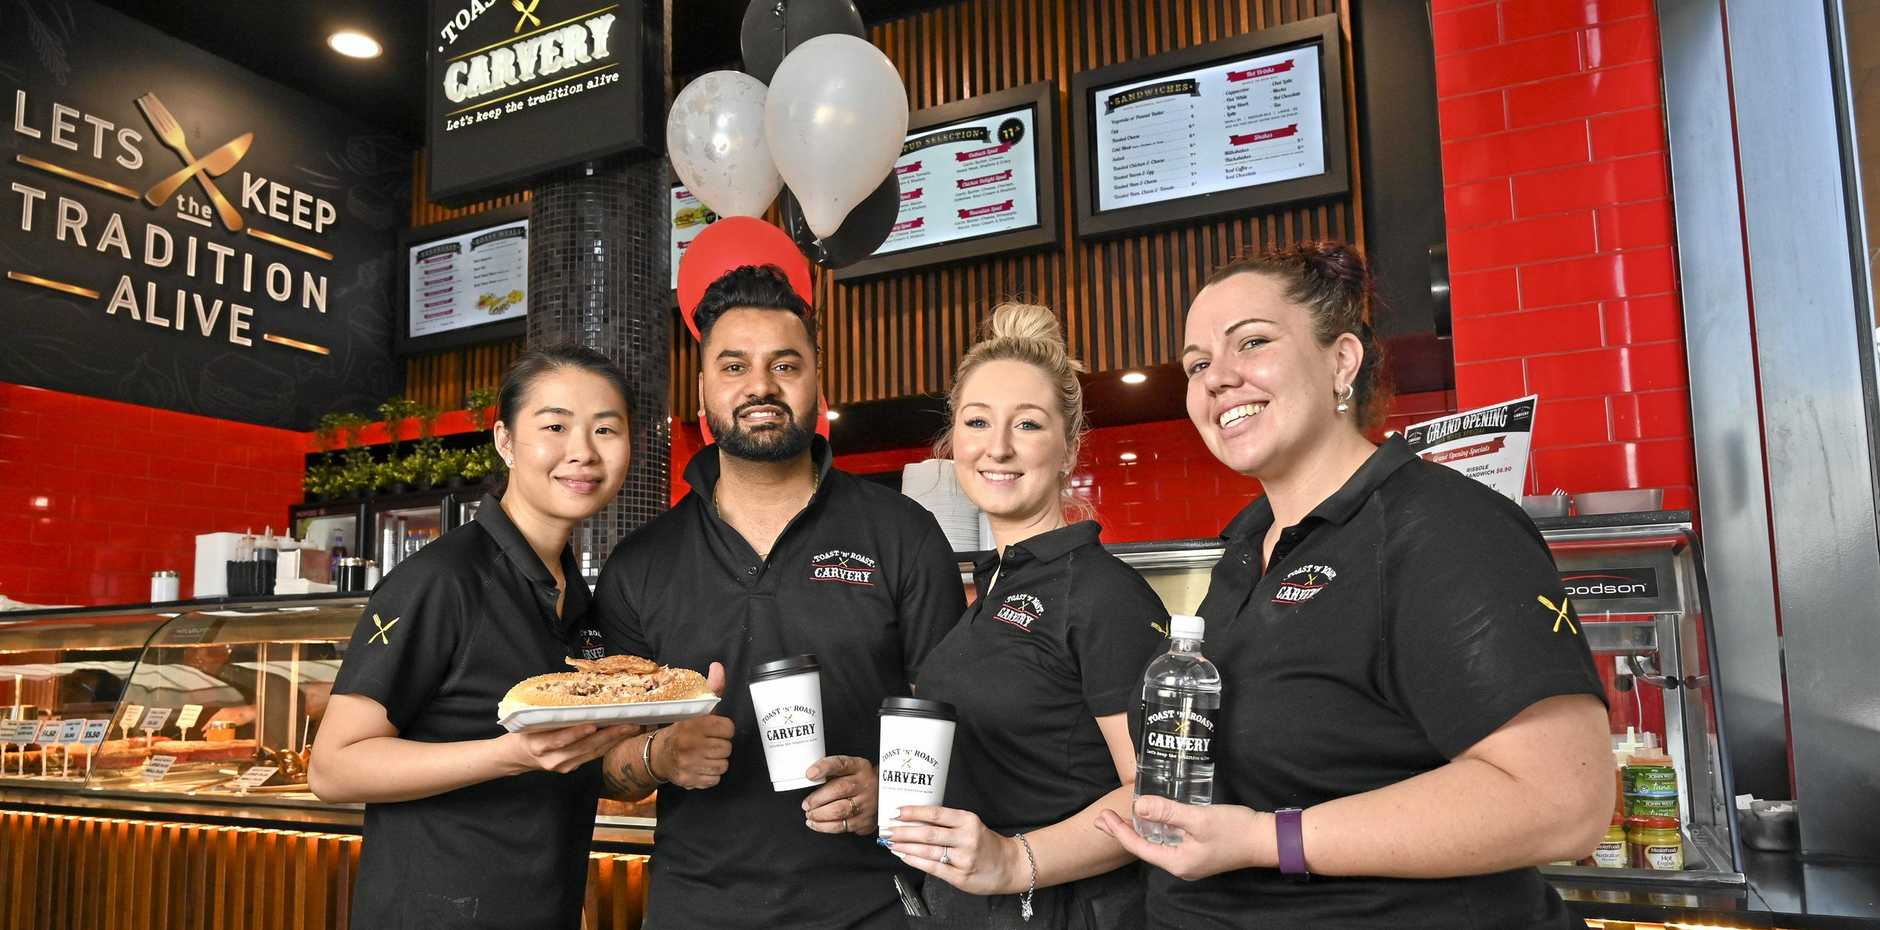 Niky Chan, Sunny Kumar, Nicole Robinson and Tarnz Altenburg of Toast and Roast Carvery at Orion.